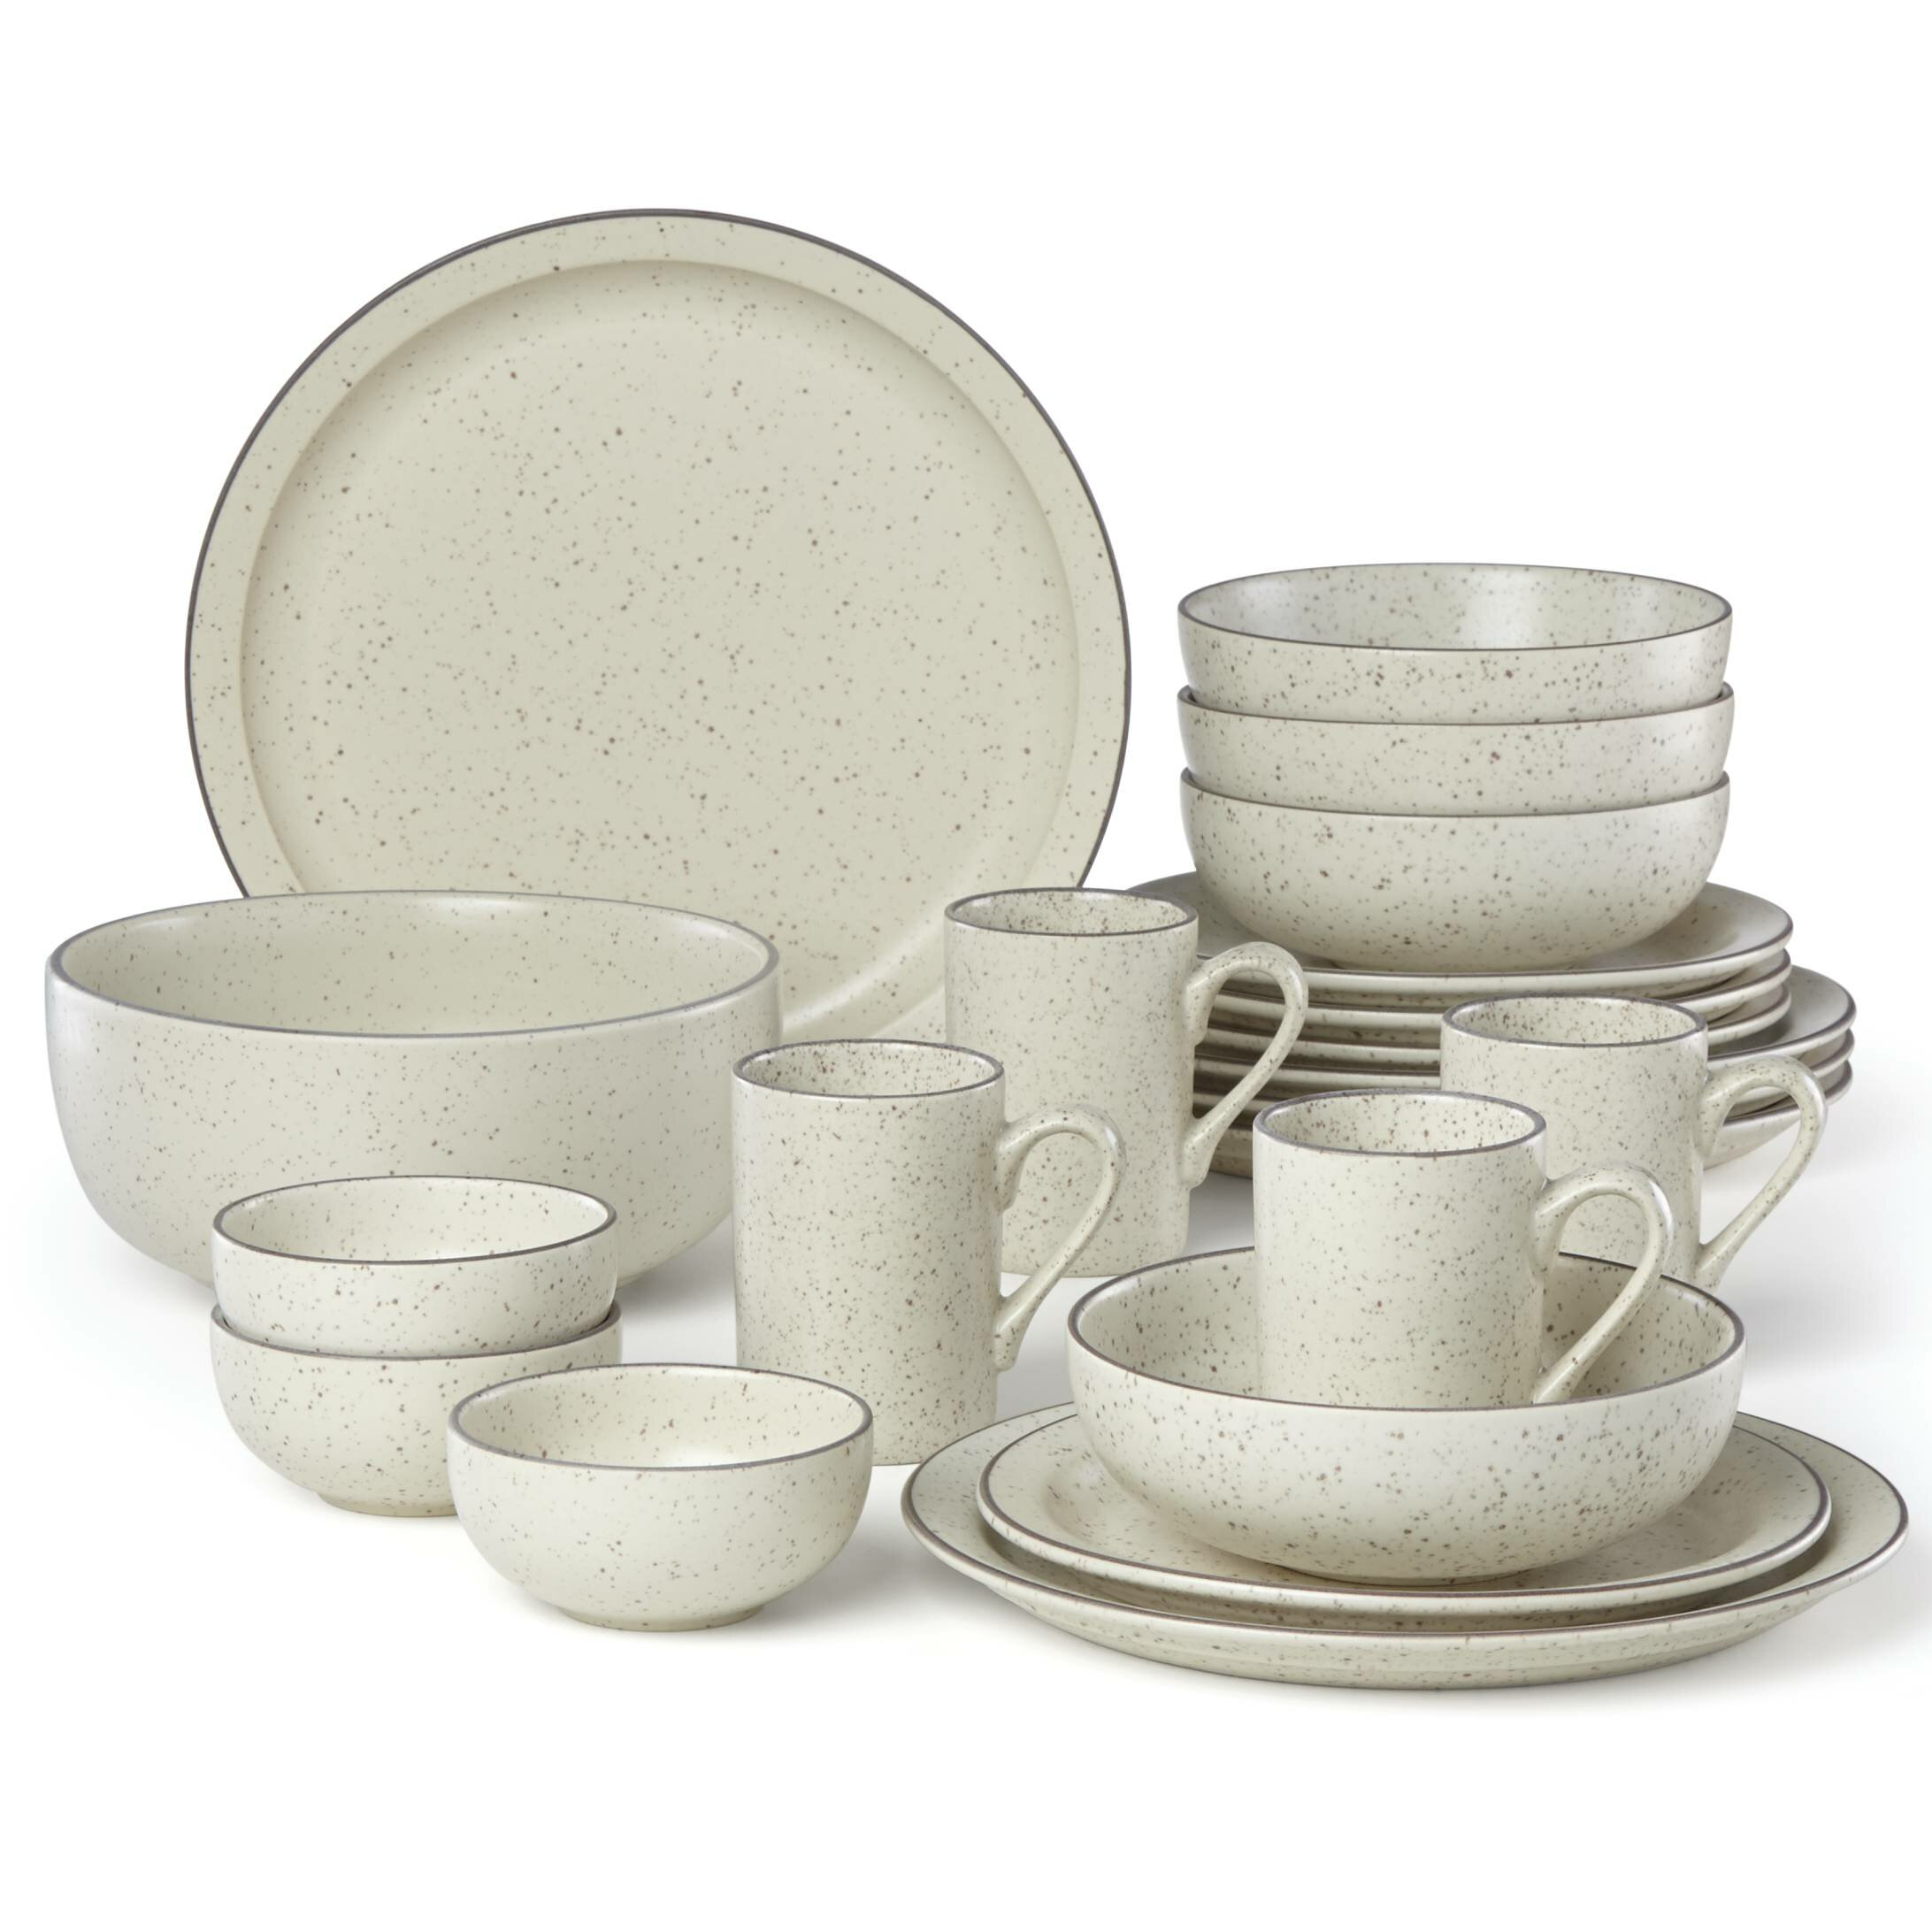 sc 1 st  Wayfair & Dansk Kallan 16 Piece Dinnerware Set Service for 4 \u0026 Reviews | Wayfair